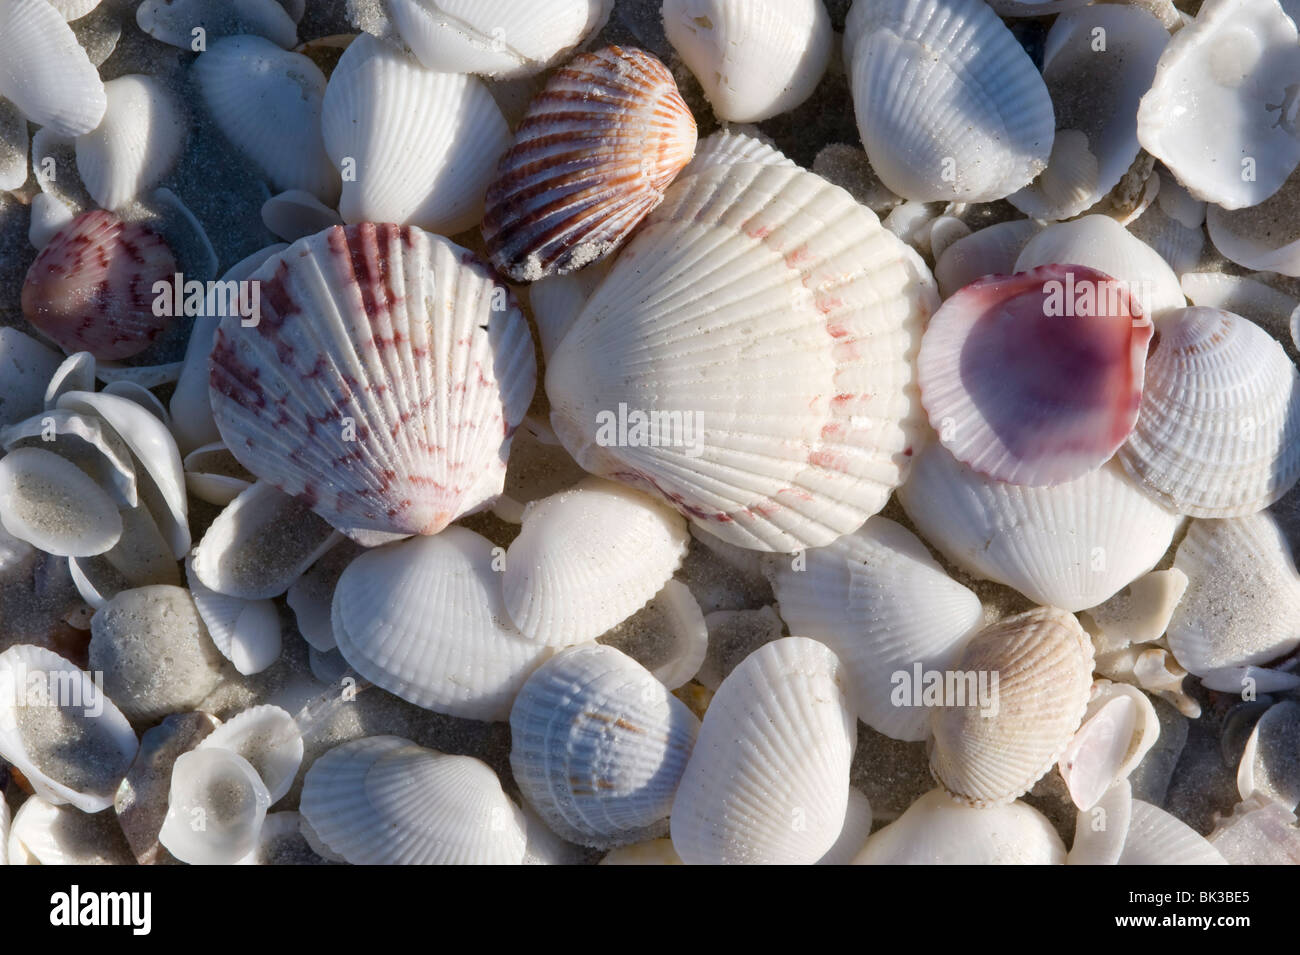 Close up of shells including a fan scallop and calico scallop on a beach on Sanibel Island, Florida, USA - Stock Image